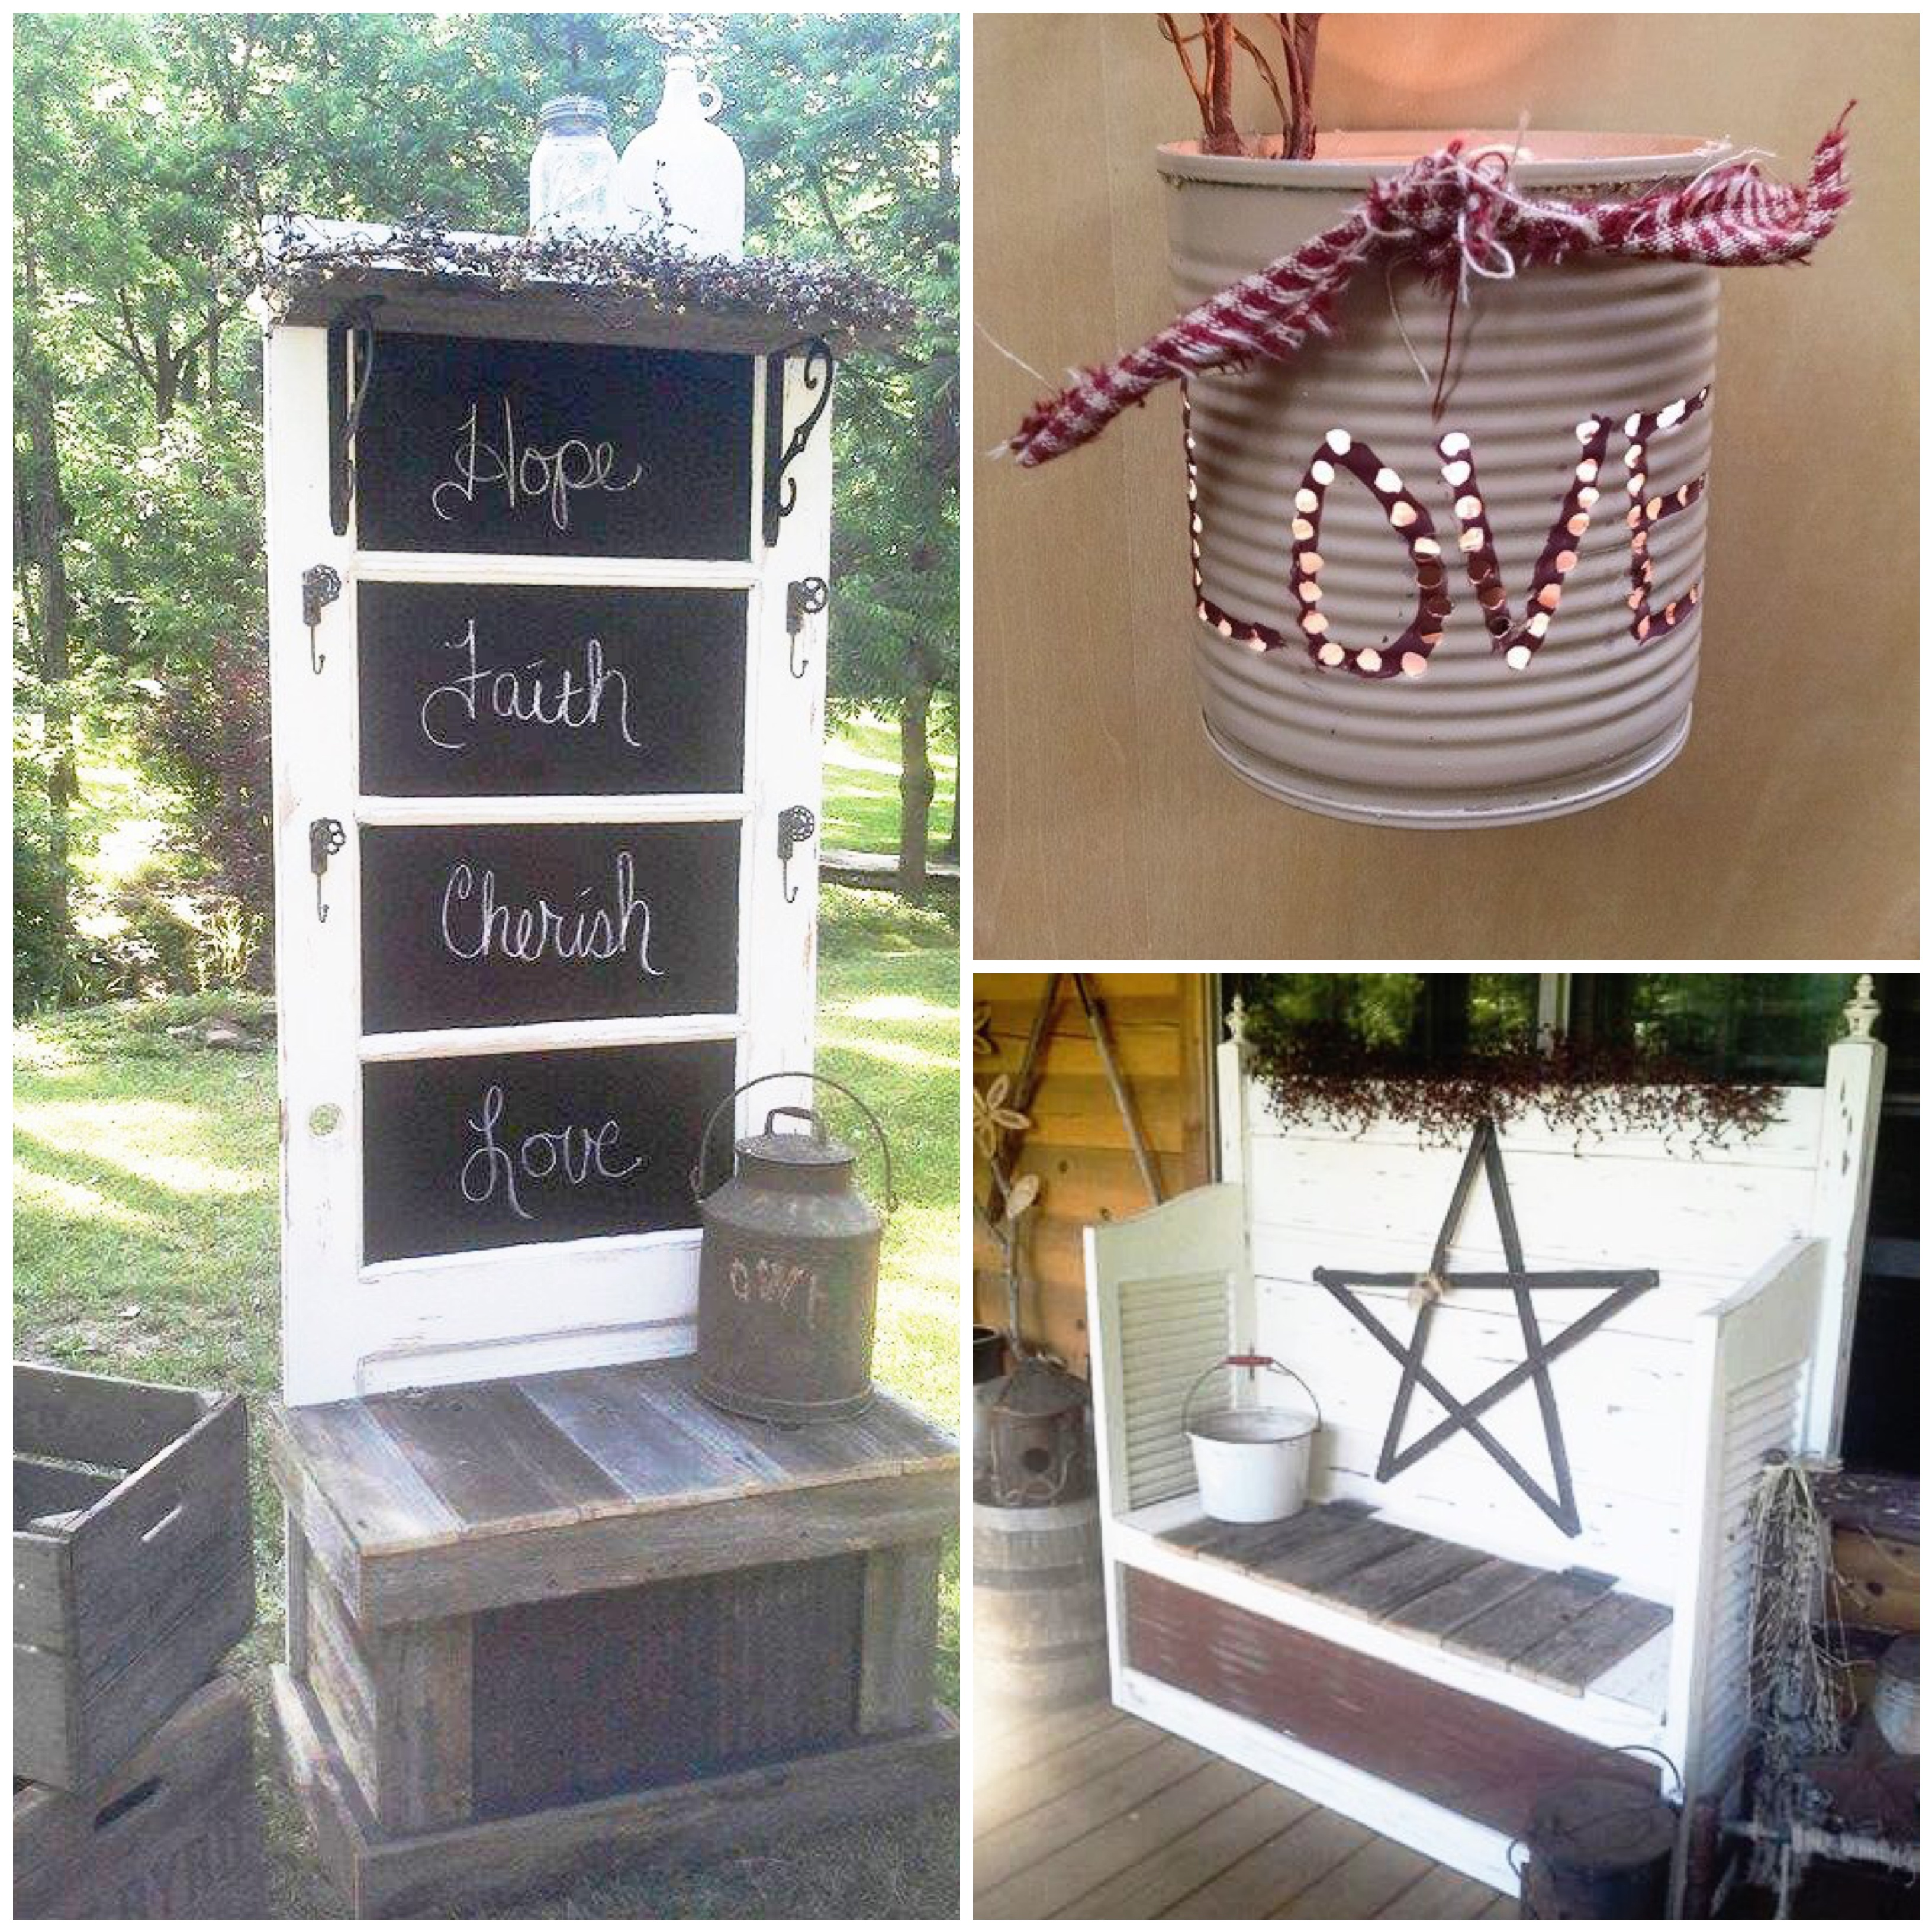 Upcycled Finds